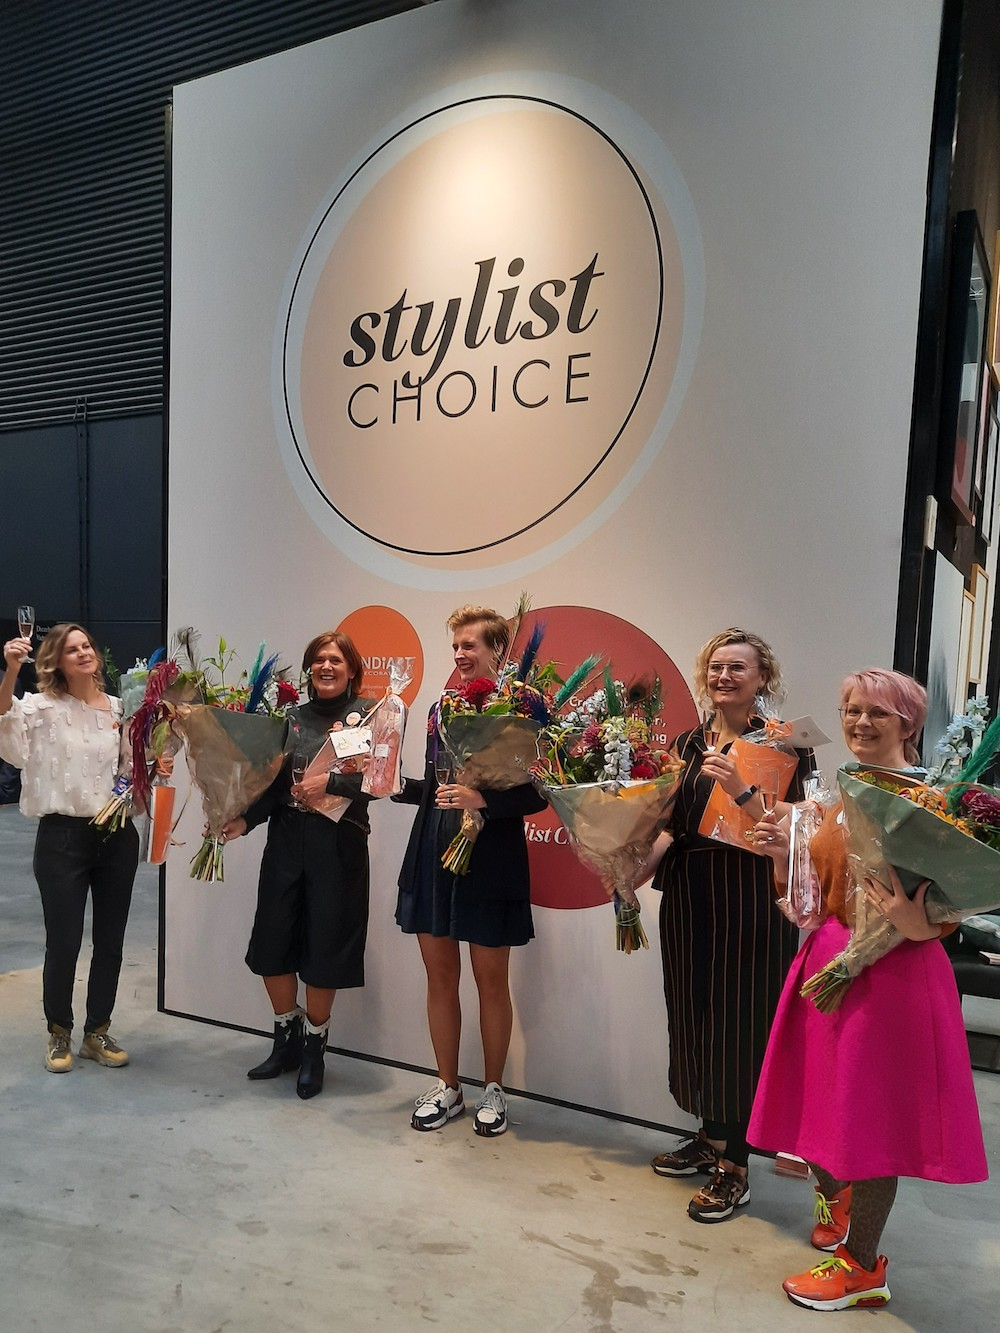 Monidiart collectie Stylist Choice